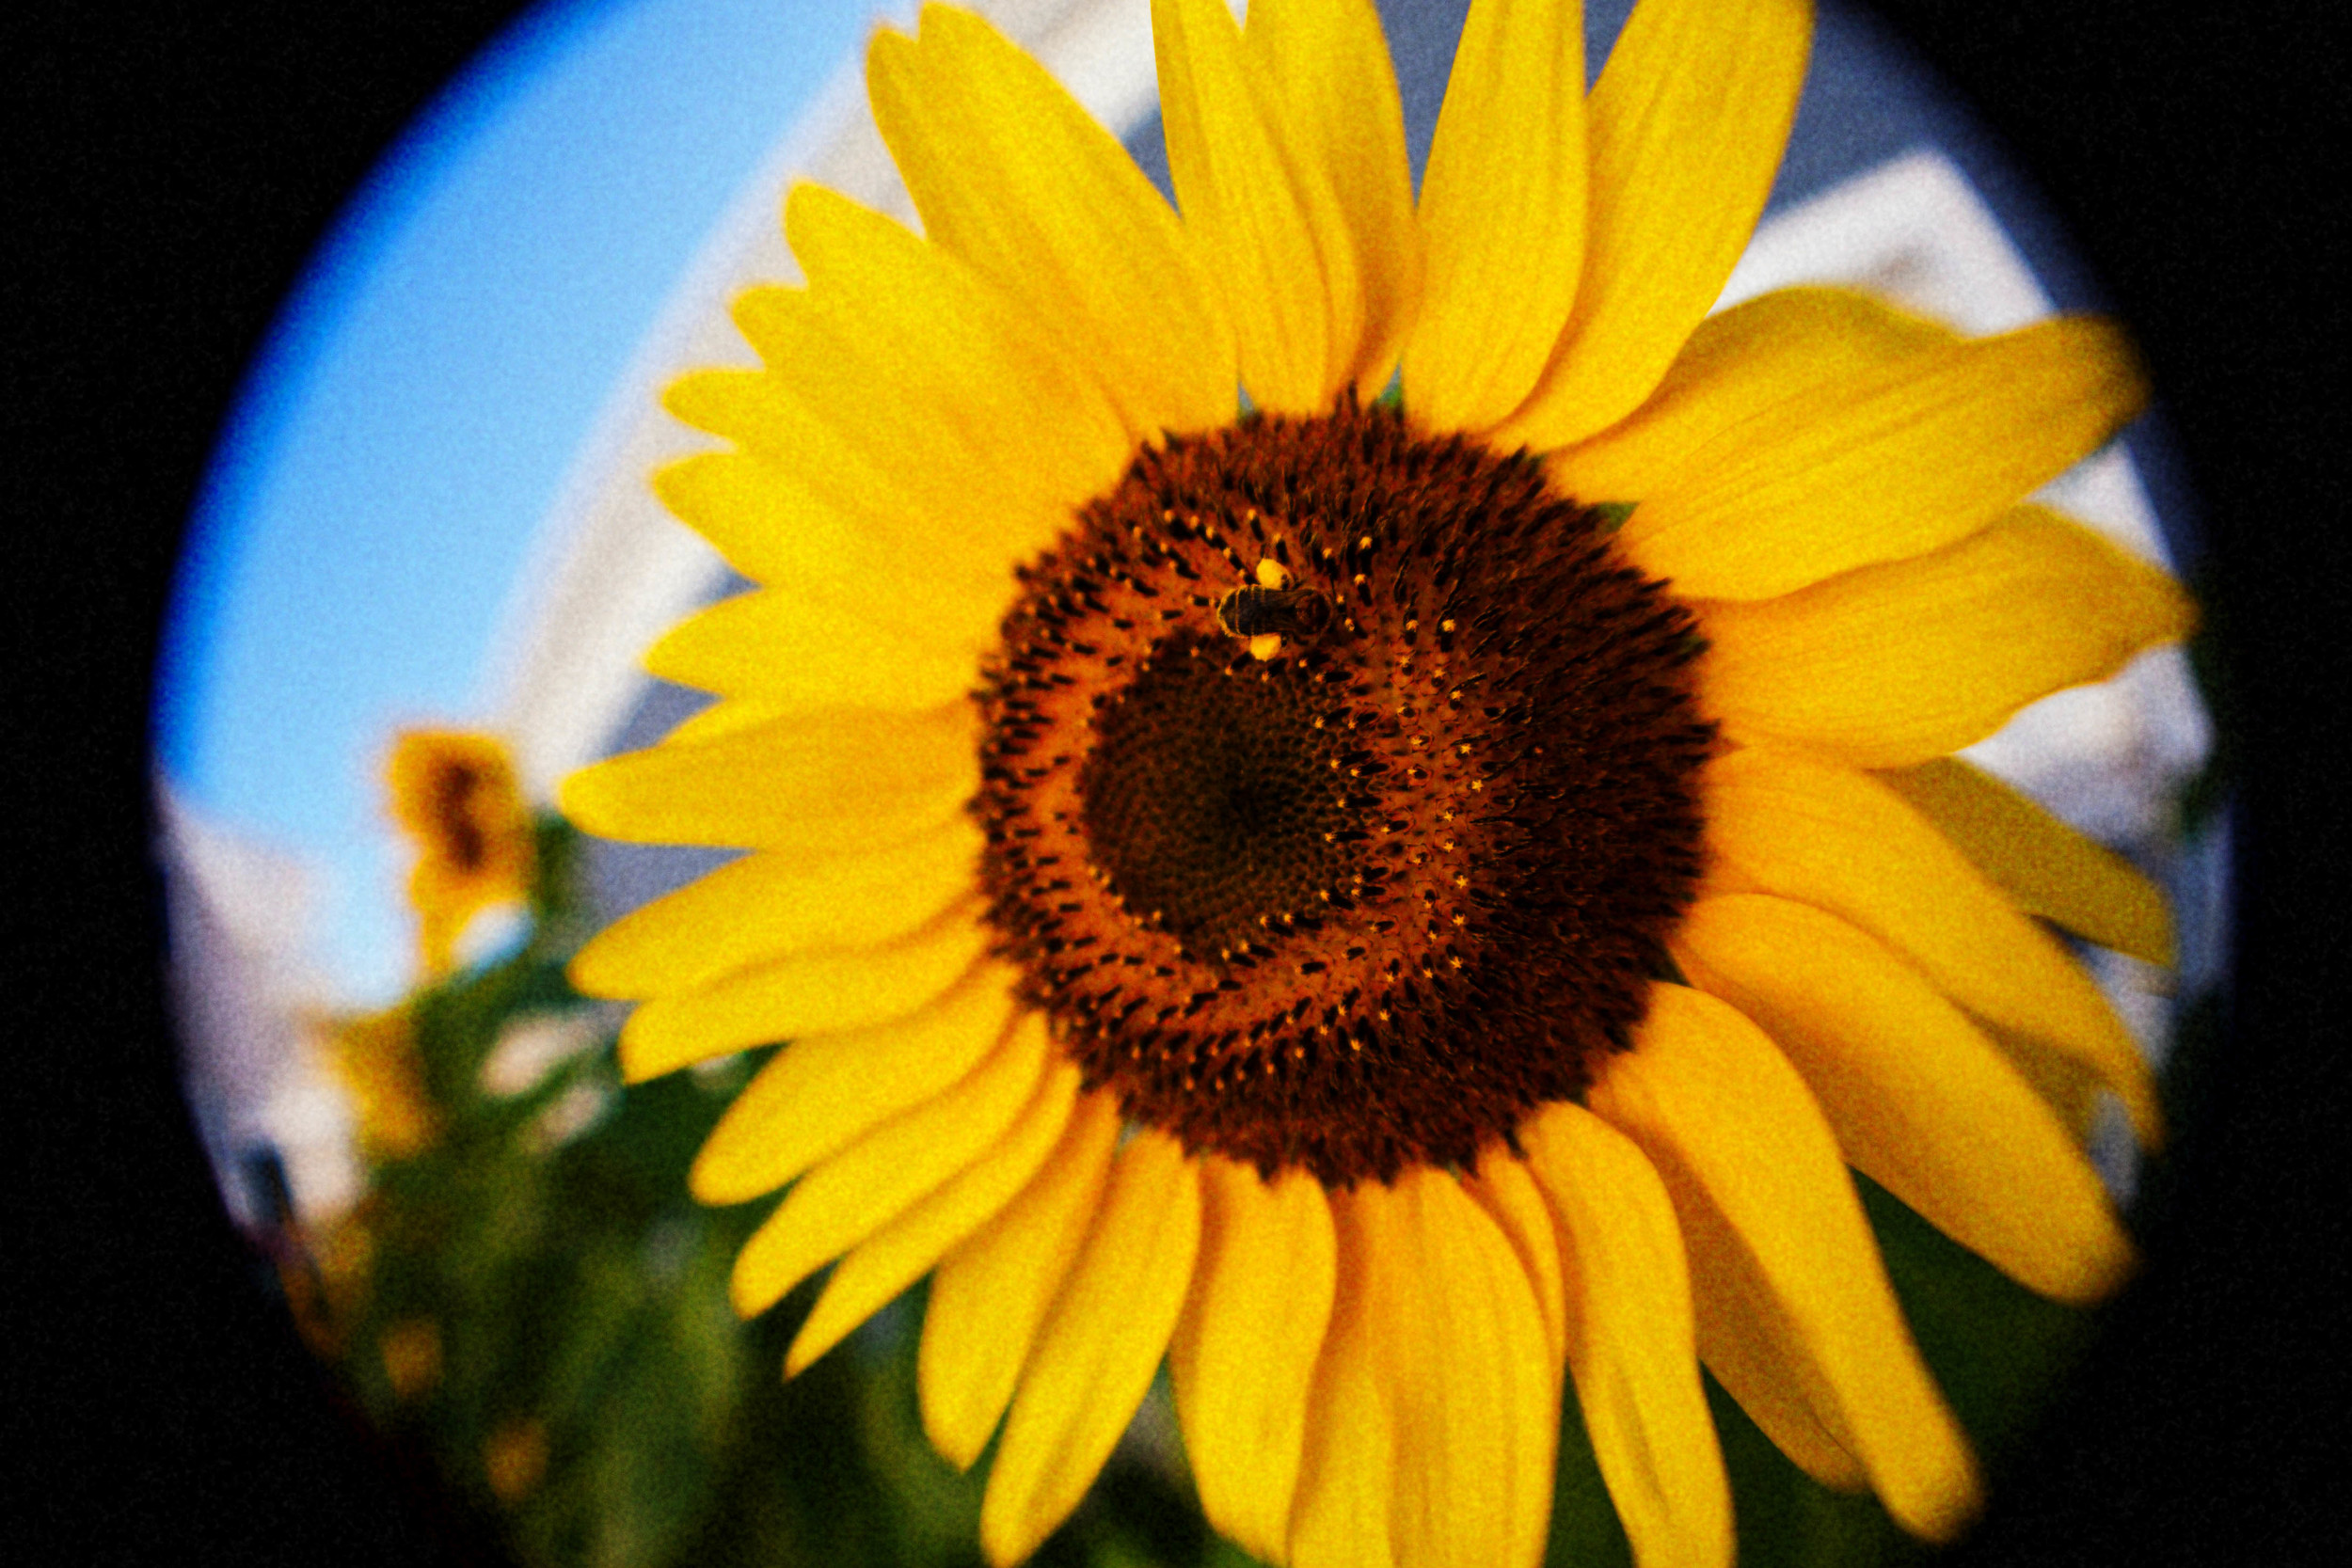 sunflower_MG_2490.jpg